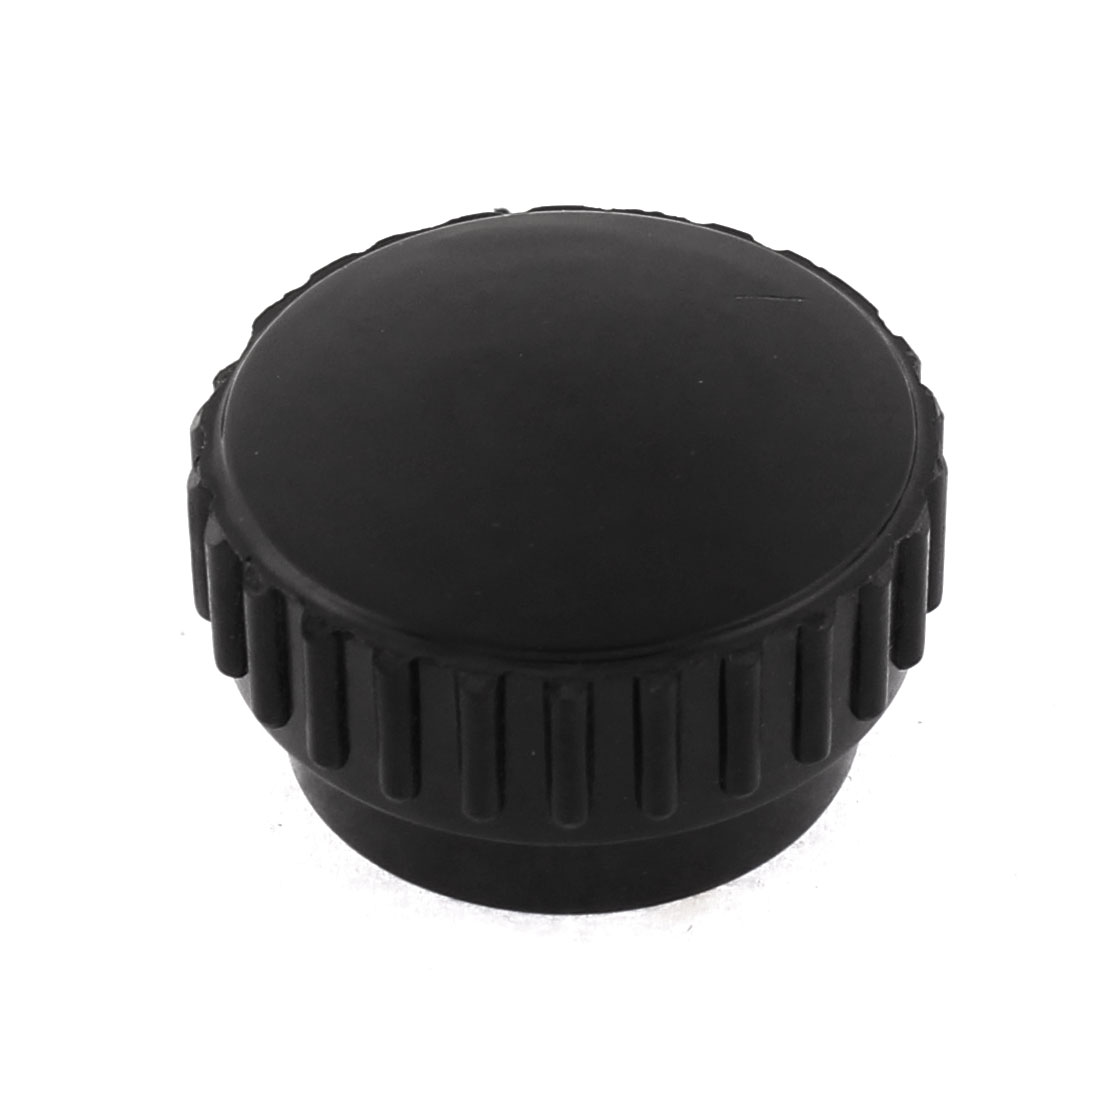 M8 Female Thread 30mm Knurled Head Clamping Knob Replacement Black